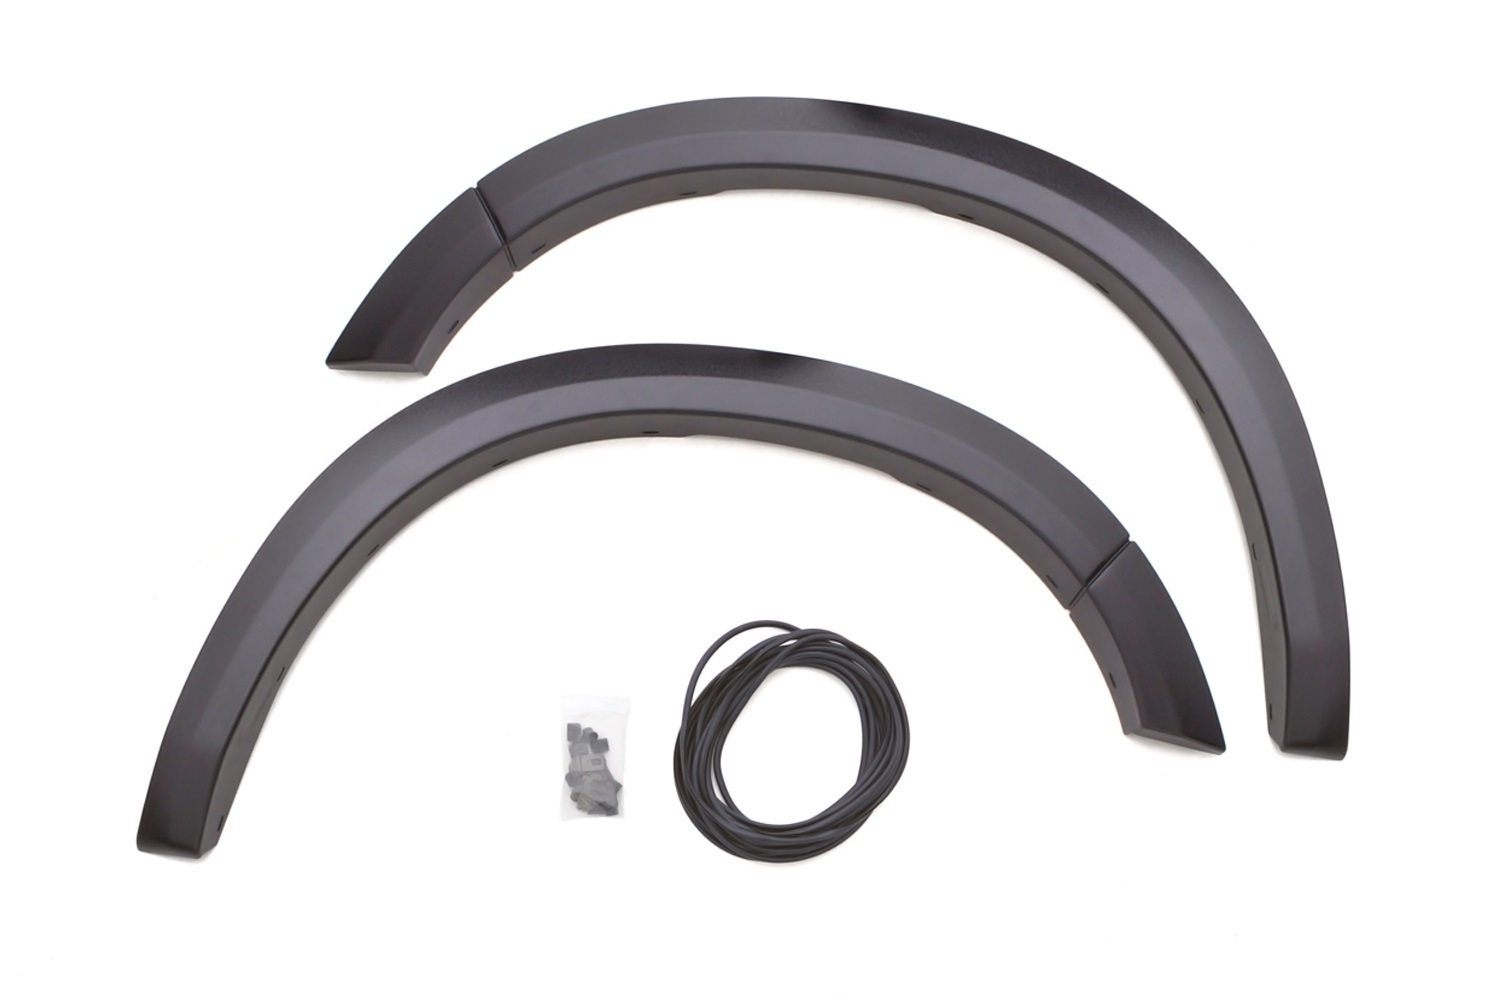 Sport Style Fender Flare Set, Smooth Black Finish, 2 pc., Front Flare Height 4.25 in., Front Flare Tire Coverage 1 in.